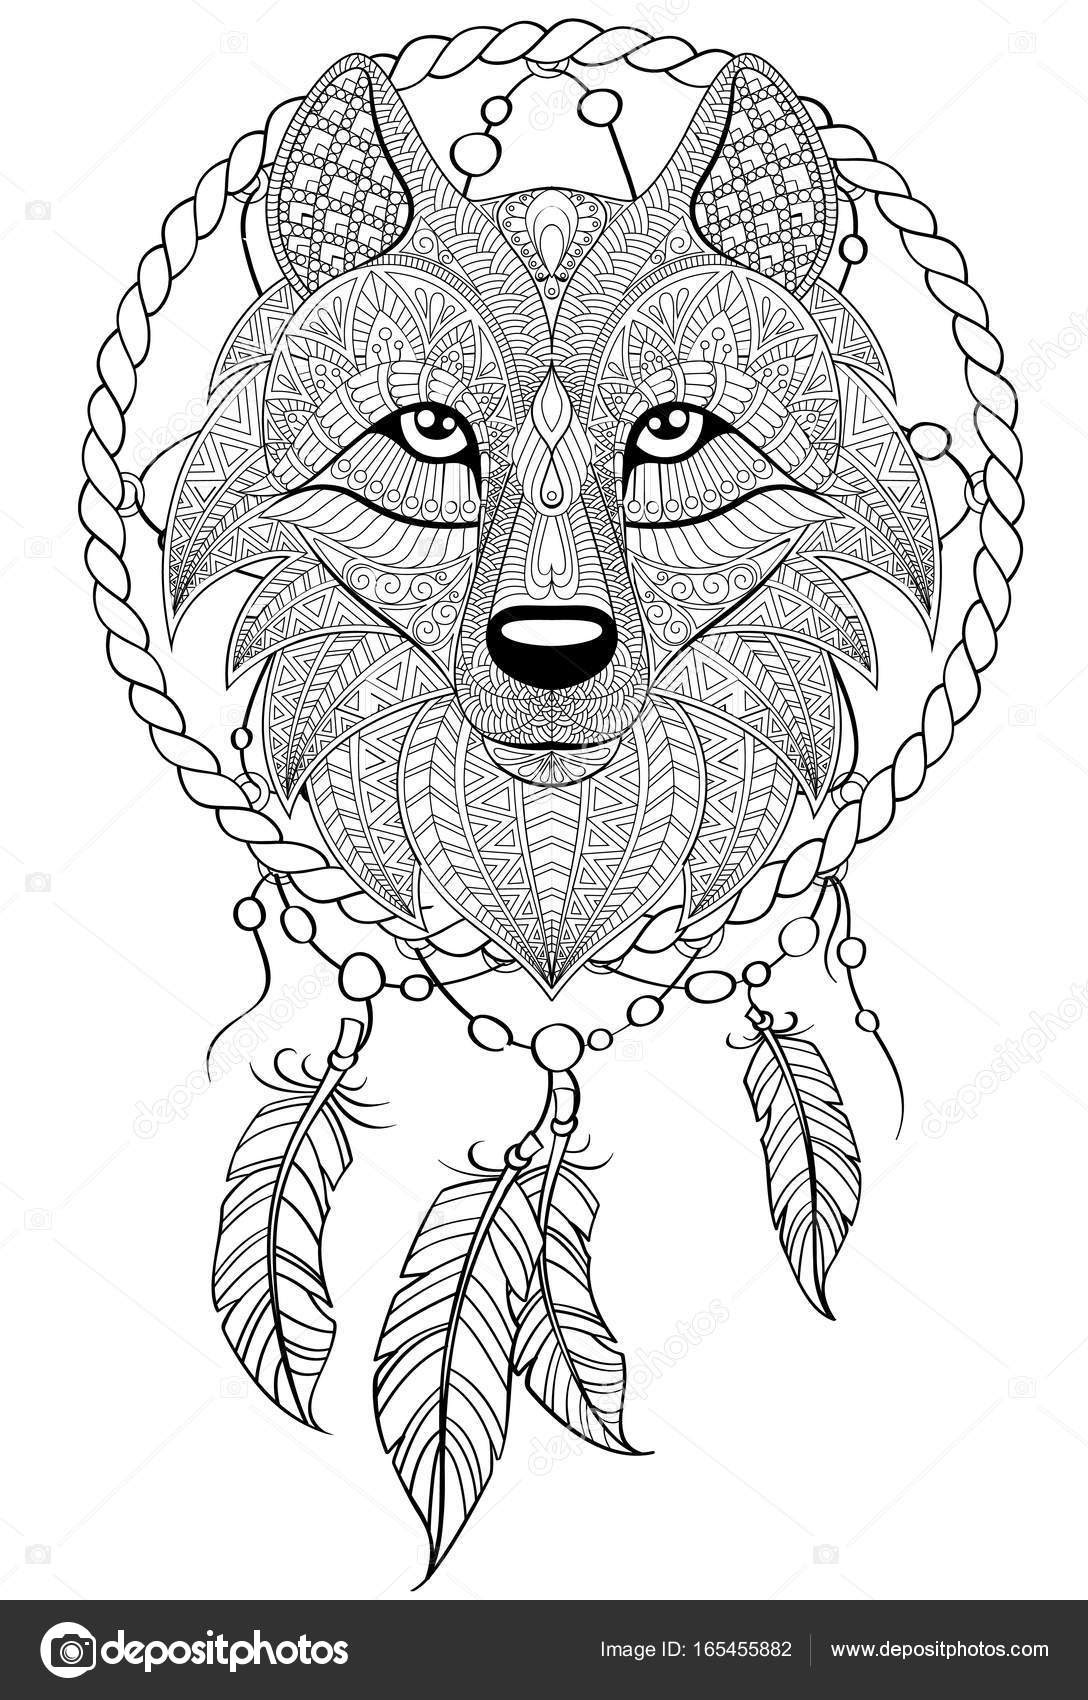 Wolf Dreamcatcher Drawing at GetDrawings | Free download